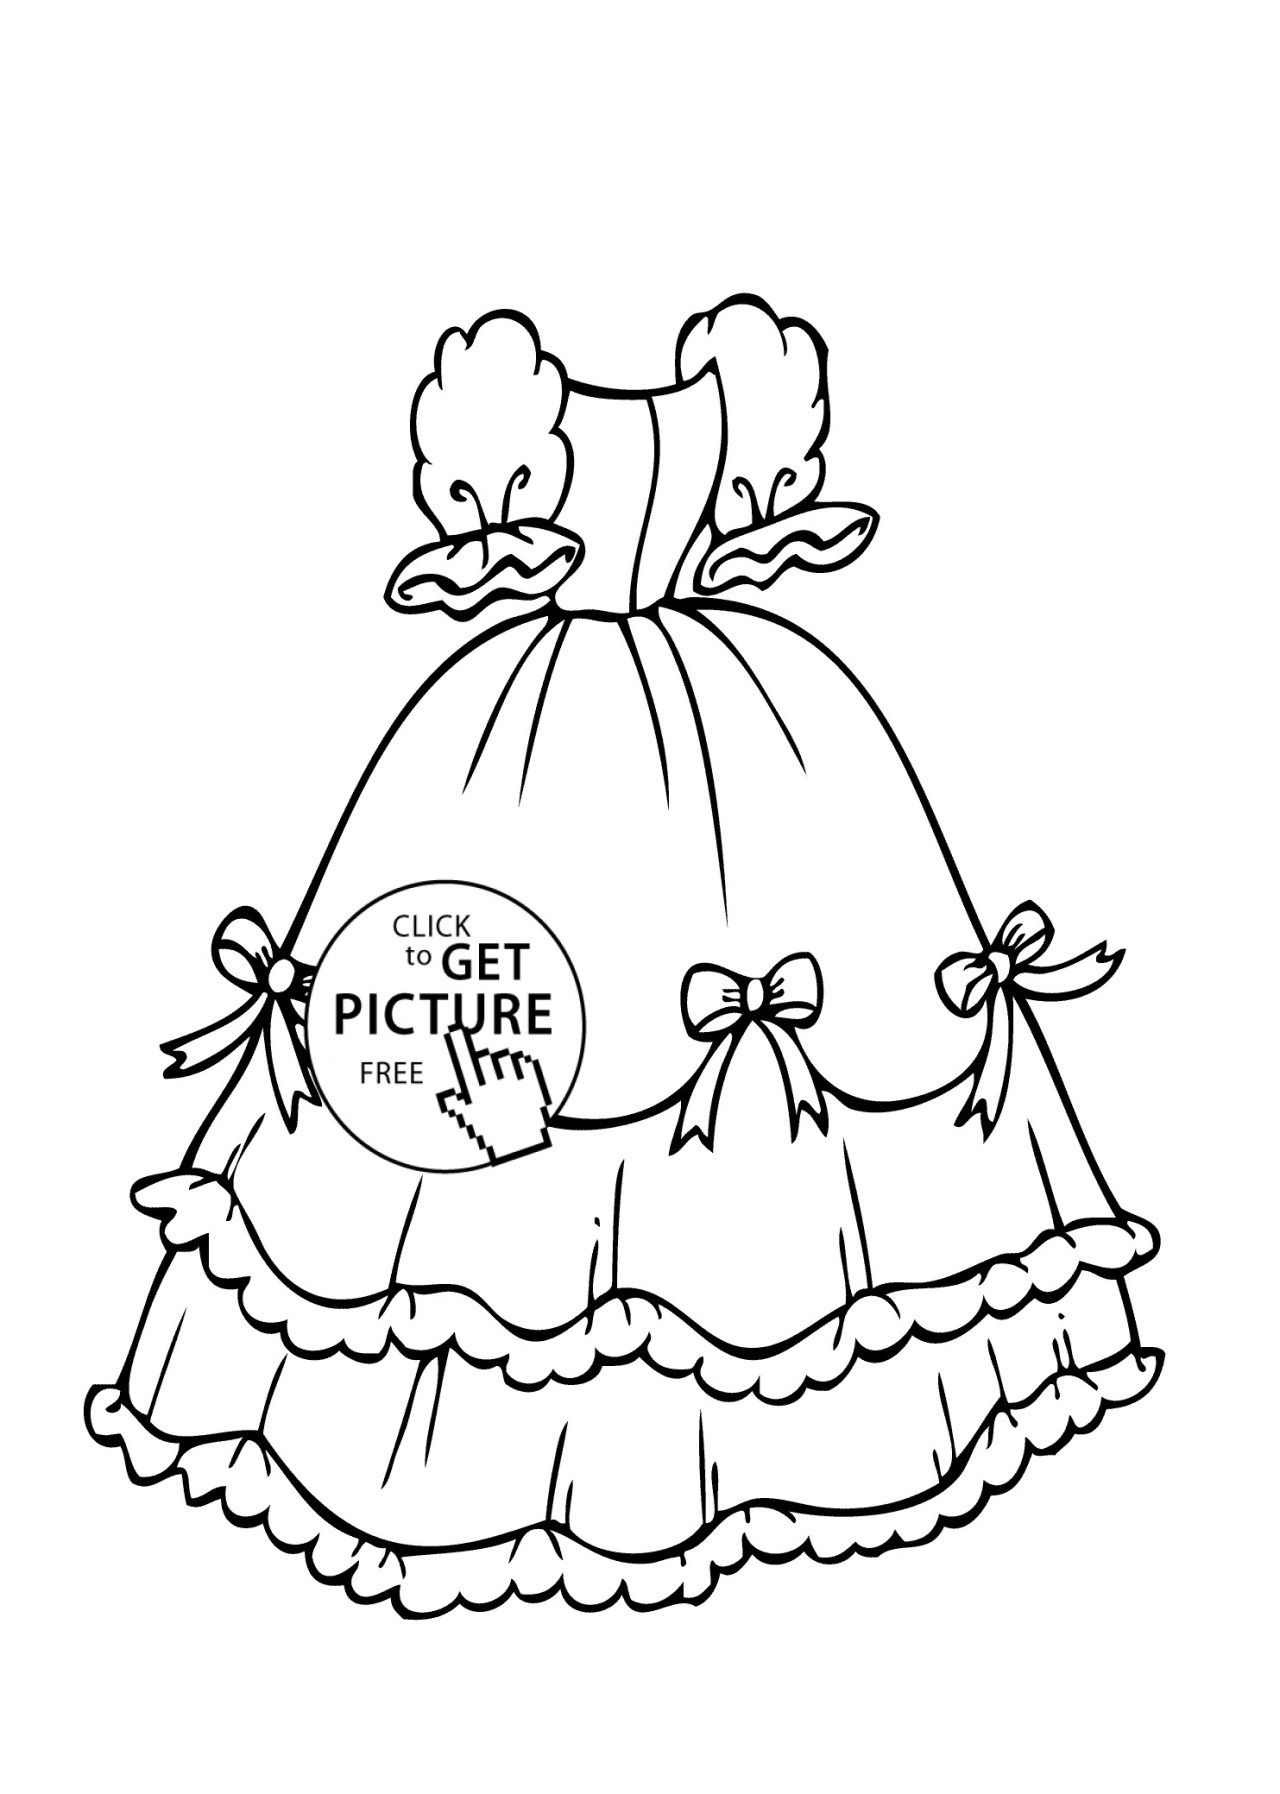 25 Creative Picture Of Dress Coloring Pages Entitlementtrap Com Coloring Pages For Girls Free Coloring Pages Coloring Pages Winter